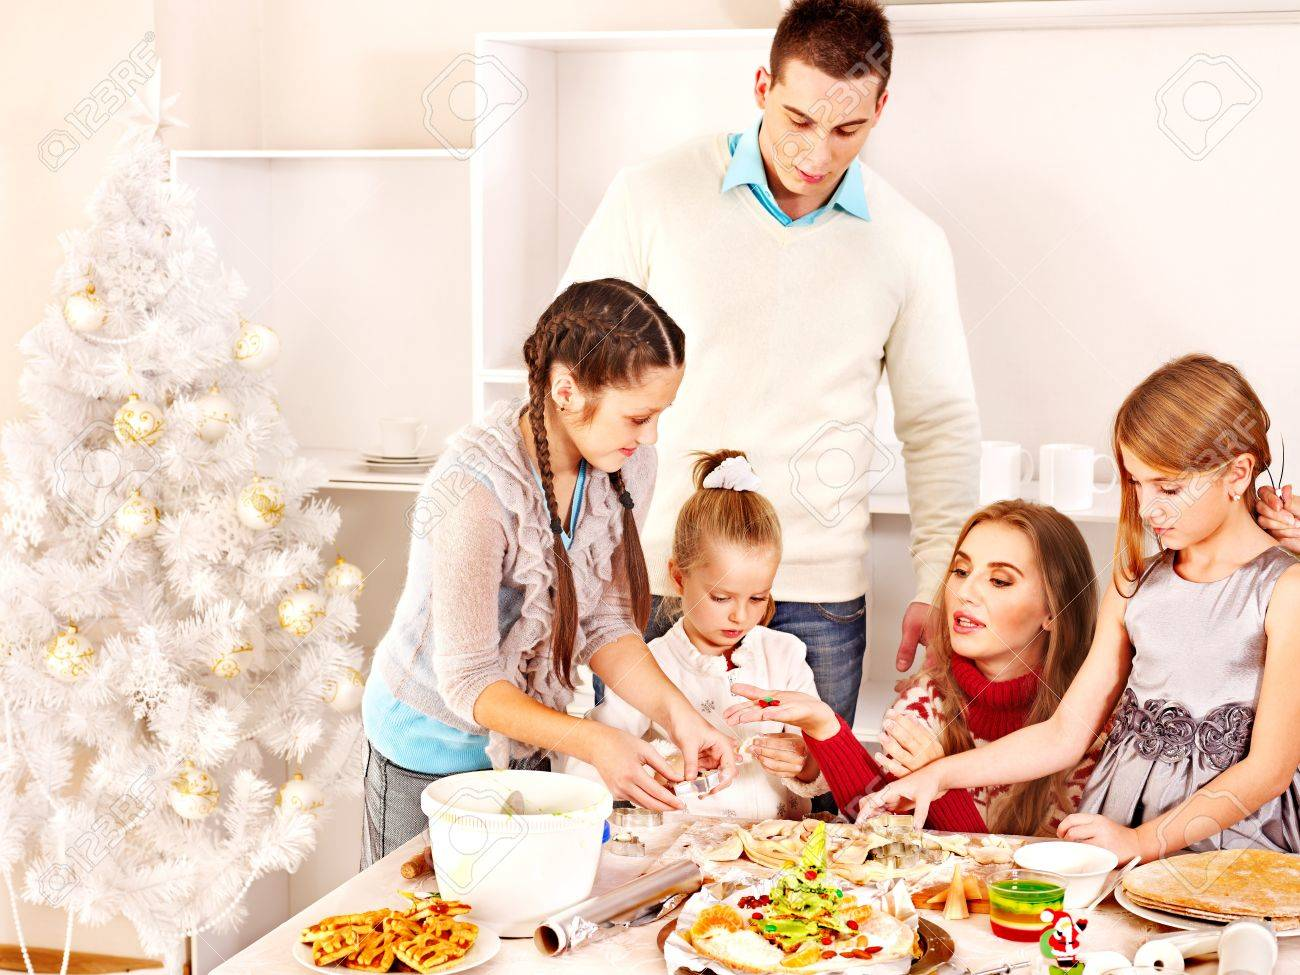 Happy family in kitchen - Happy Family With Children Rolling Dough In Christmas Kitchen Stock Photo 16612998